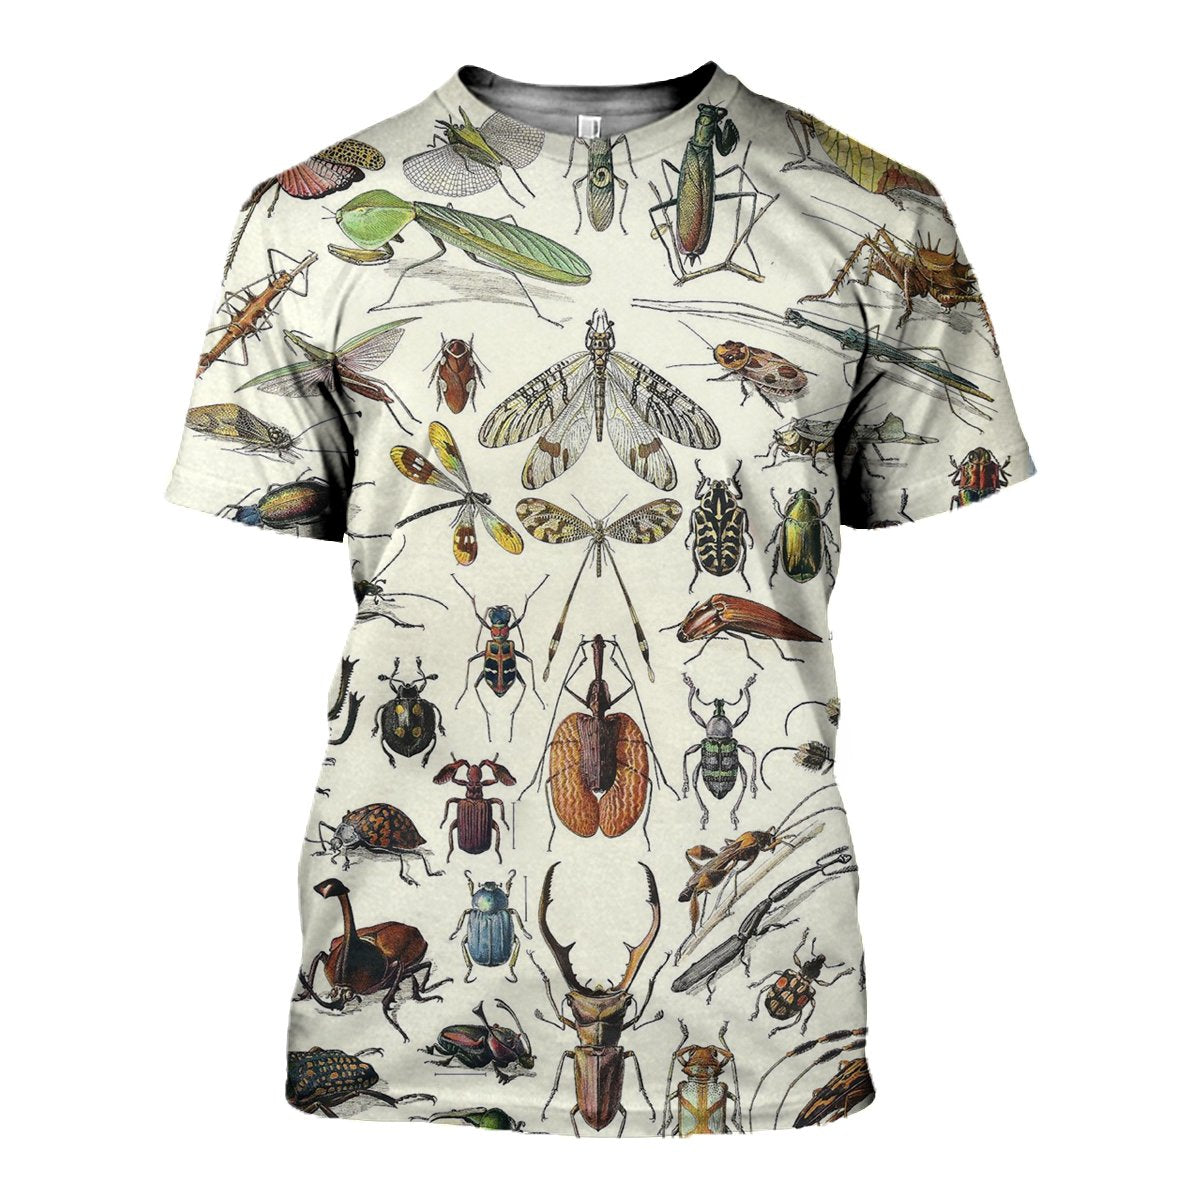 3D All Over Printed Insect Scientific Shirts and Shorts